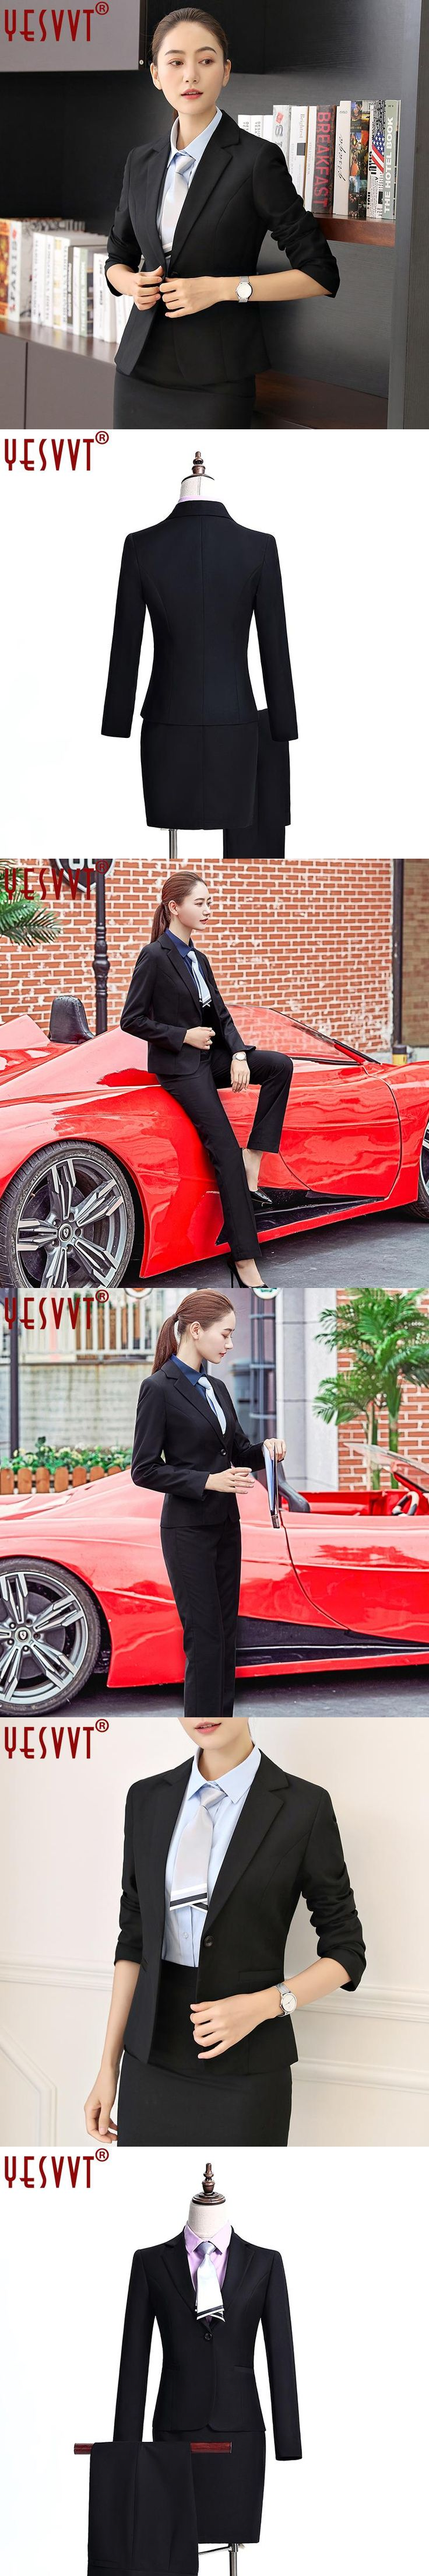 2017 YESVVT Professional women fashion blazer with skirt and pants long sleeve business work skirt suits ladies office uniform